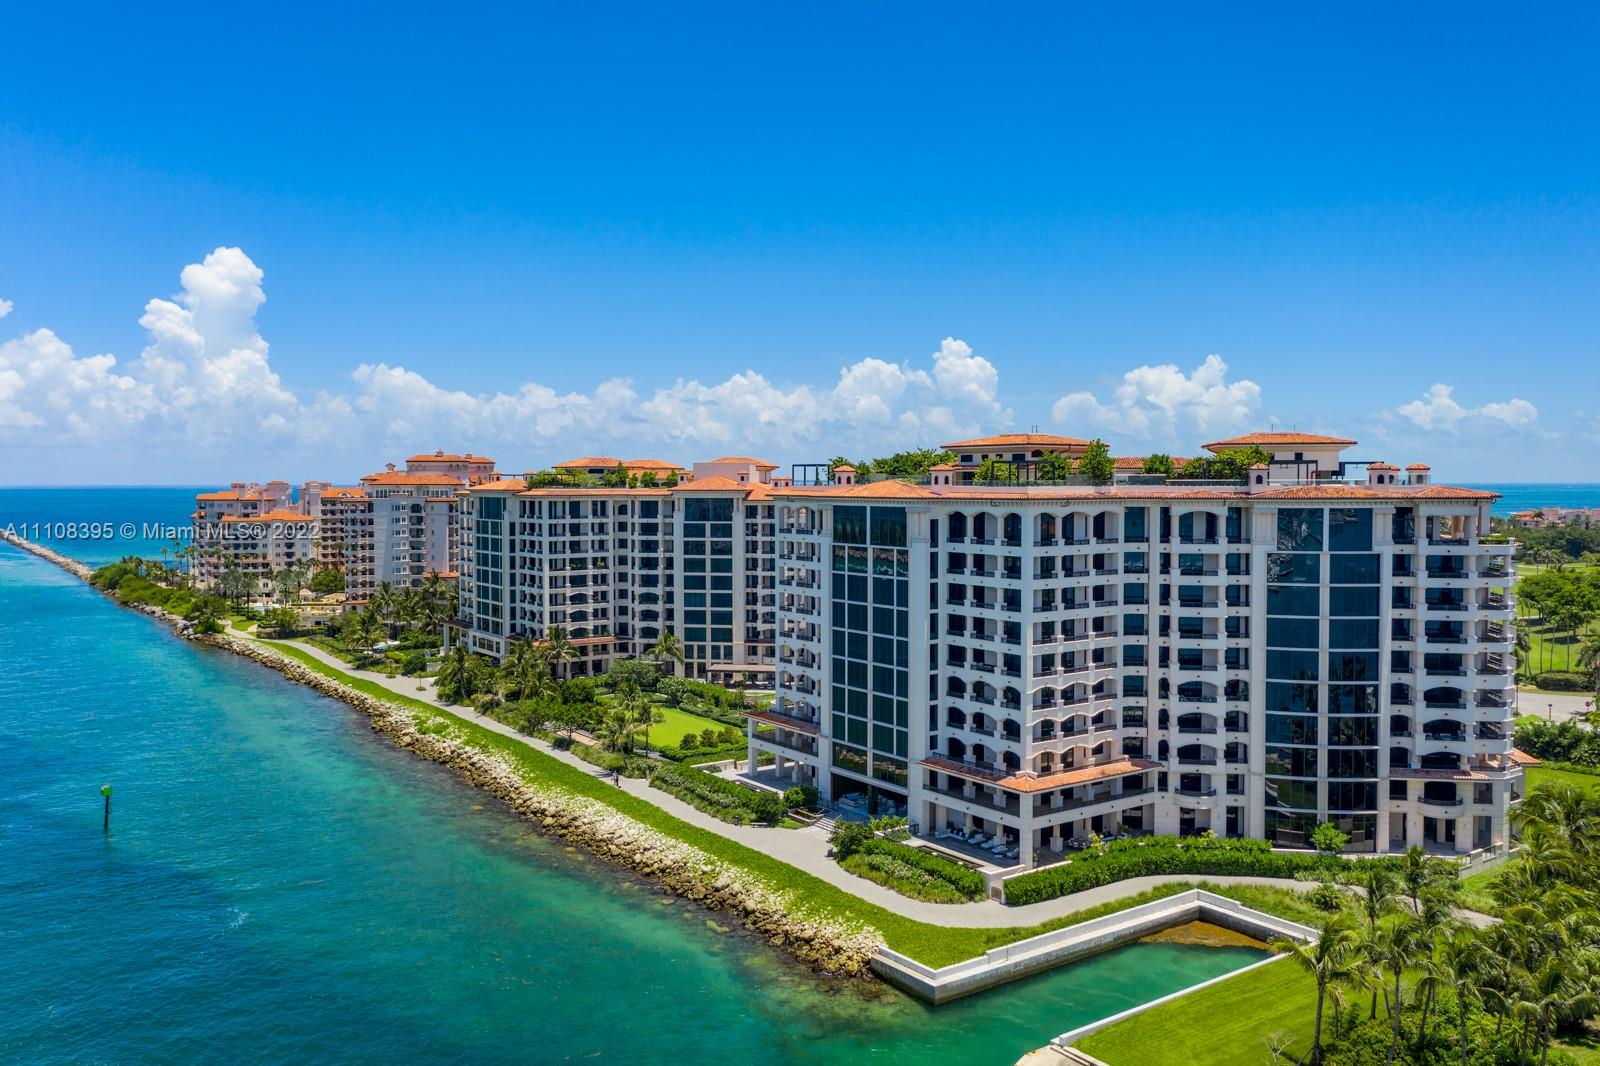 East facing, 3 bedroom, 3.5 bath with sparkling ocean views from Fisher Island's newest and most desirable building, Palazzo della Luna. This flow-thru unit, with East to West facing balconies, has 10-foot floor to ceiling windows. A ready, turn-key haven is professionally designed and furnished, with built-in closets throughout. The custom, craned-in, 16-foot white Statuary Marble countertop is a focal point in design in the Boffi gourmet kitchen. Miele, SubZero Refrigeration, and Wine Cooler round out the utmost in luxury and modern living. 6835 comes with the largest available storage room, two prime parking spaces outfitted with Tesla Charging stations, and 2 Garia golf carts. PdL is a full-service building with countless brand-new, amenities not found anywhere else on the island.